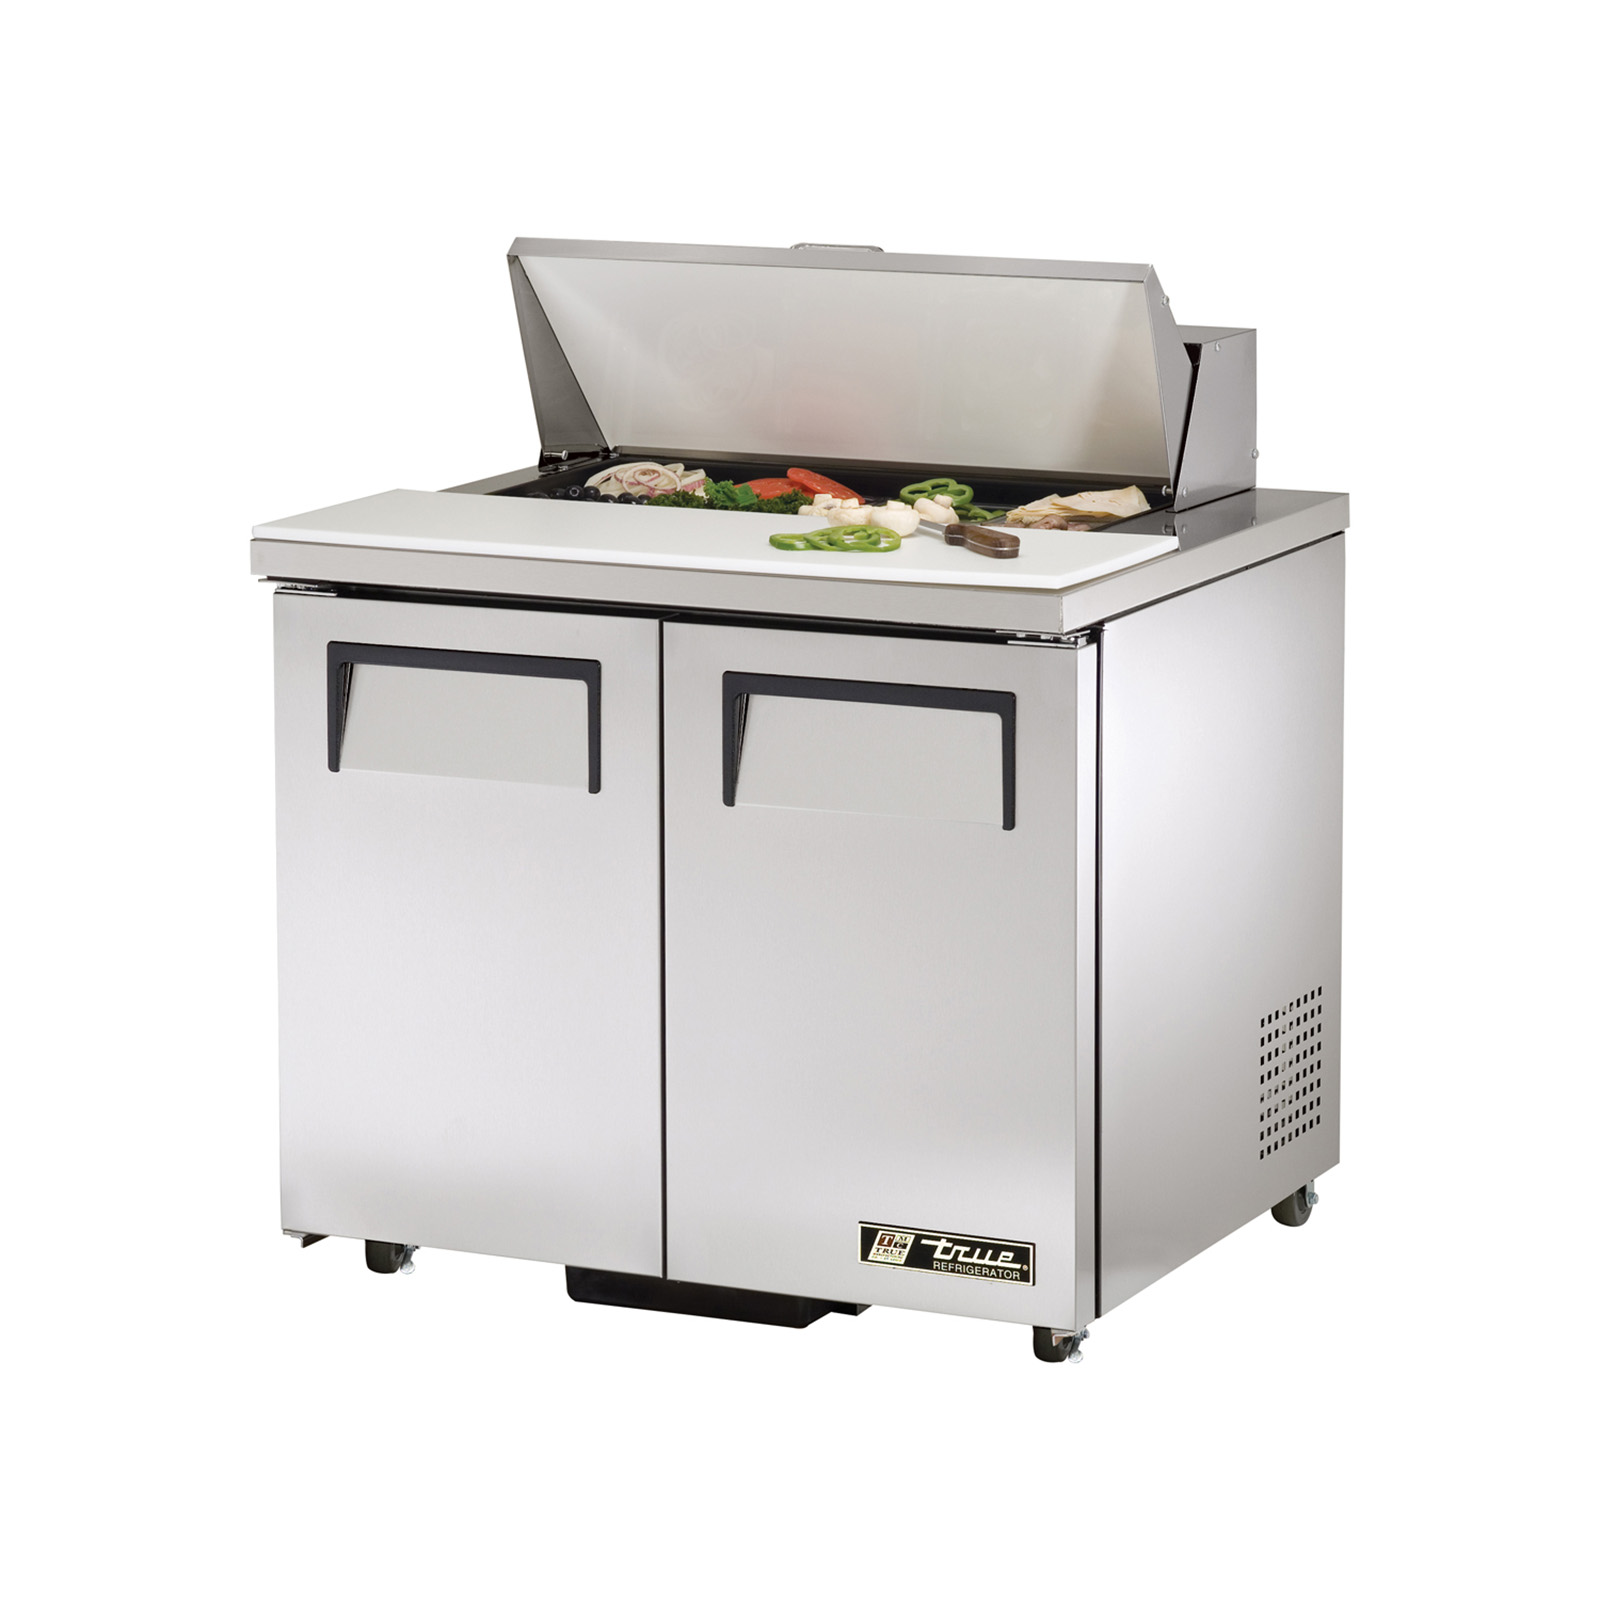 TSSU-36-08-ADA True - ADA Compliant Sandwich/Salad Unit (8) 1/6 size (4